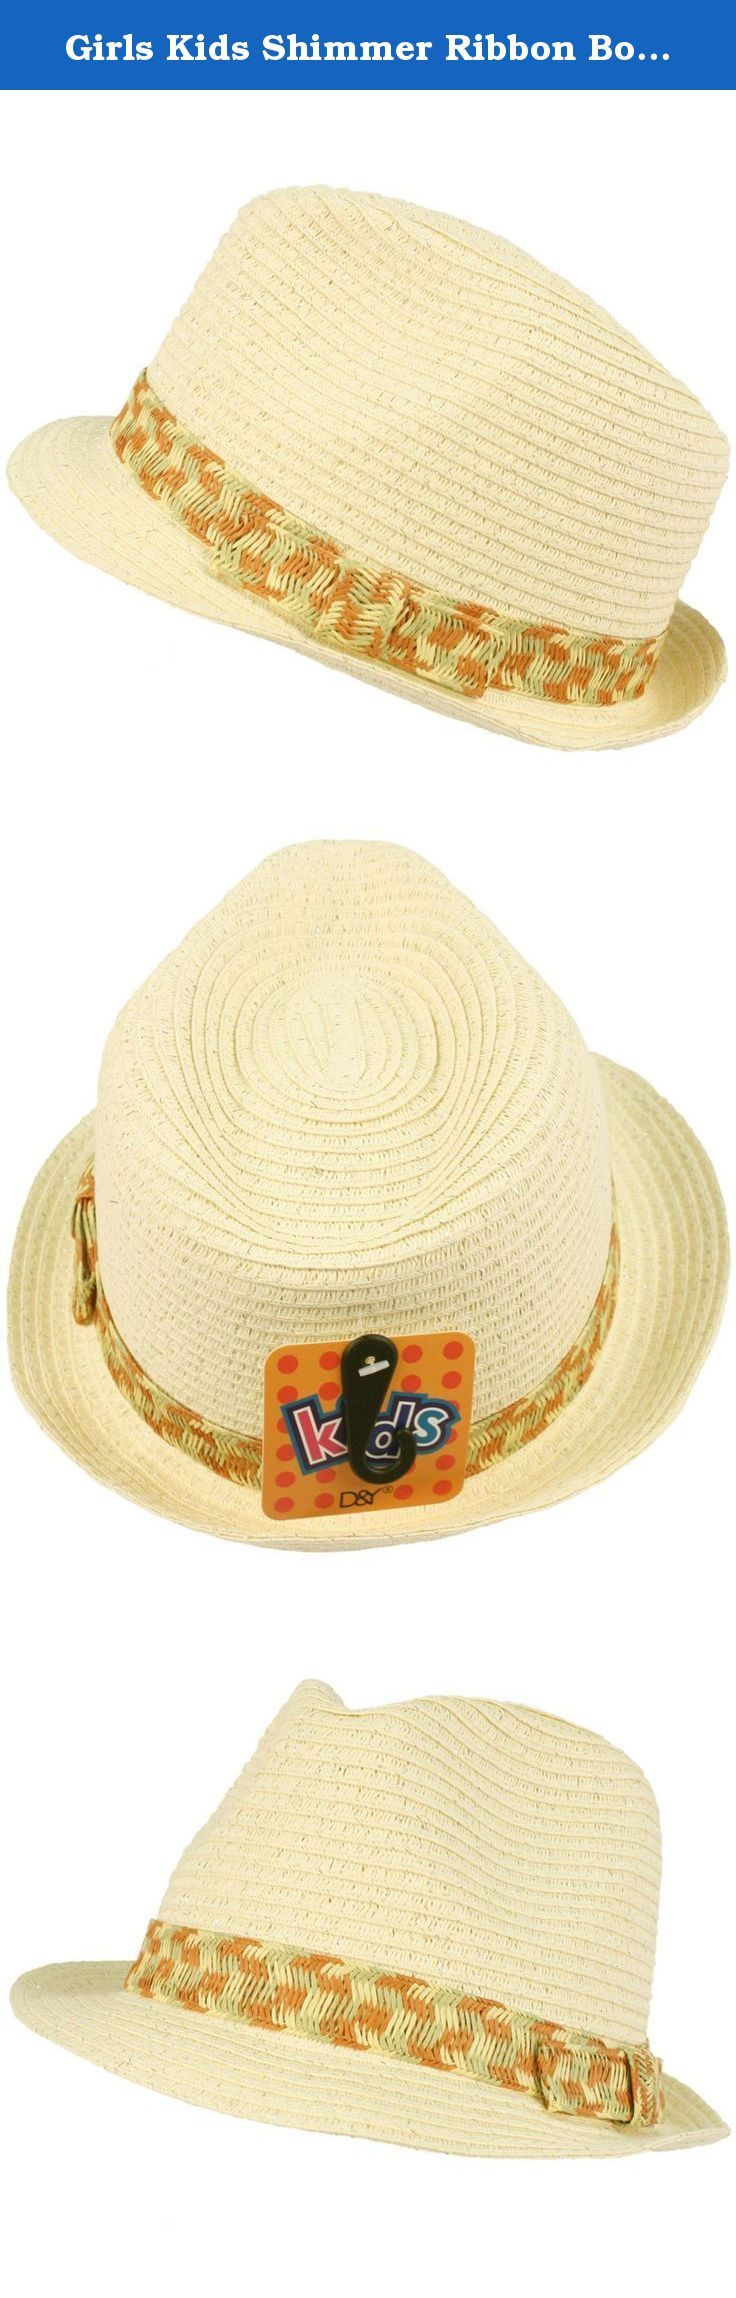 Girls Kids Shimmer Ribbon Bow Ages 4-9 Child Summer Sun Fedora Trilby Hat Ivory. New Kids Girls Child Hint of Shimmer Lurex Silver Threading Summer Spring Crushable Fedora Trilby Hat Cap with multi-color ribbon hatband. Crushable Fedora, will pop to shape. Perfect for hot weather to keep harmful sun and UV rays out of your face. Or even a formal affair like weddings, Kentucky derby, how about a picnic, a costume for a play, a day at the park, the beach or just looking stylish. Your kids…